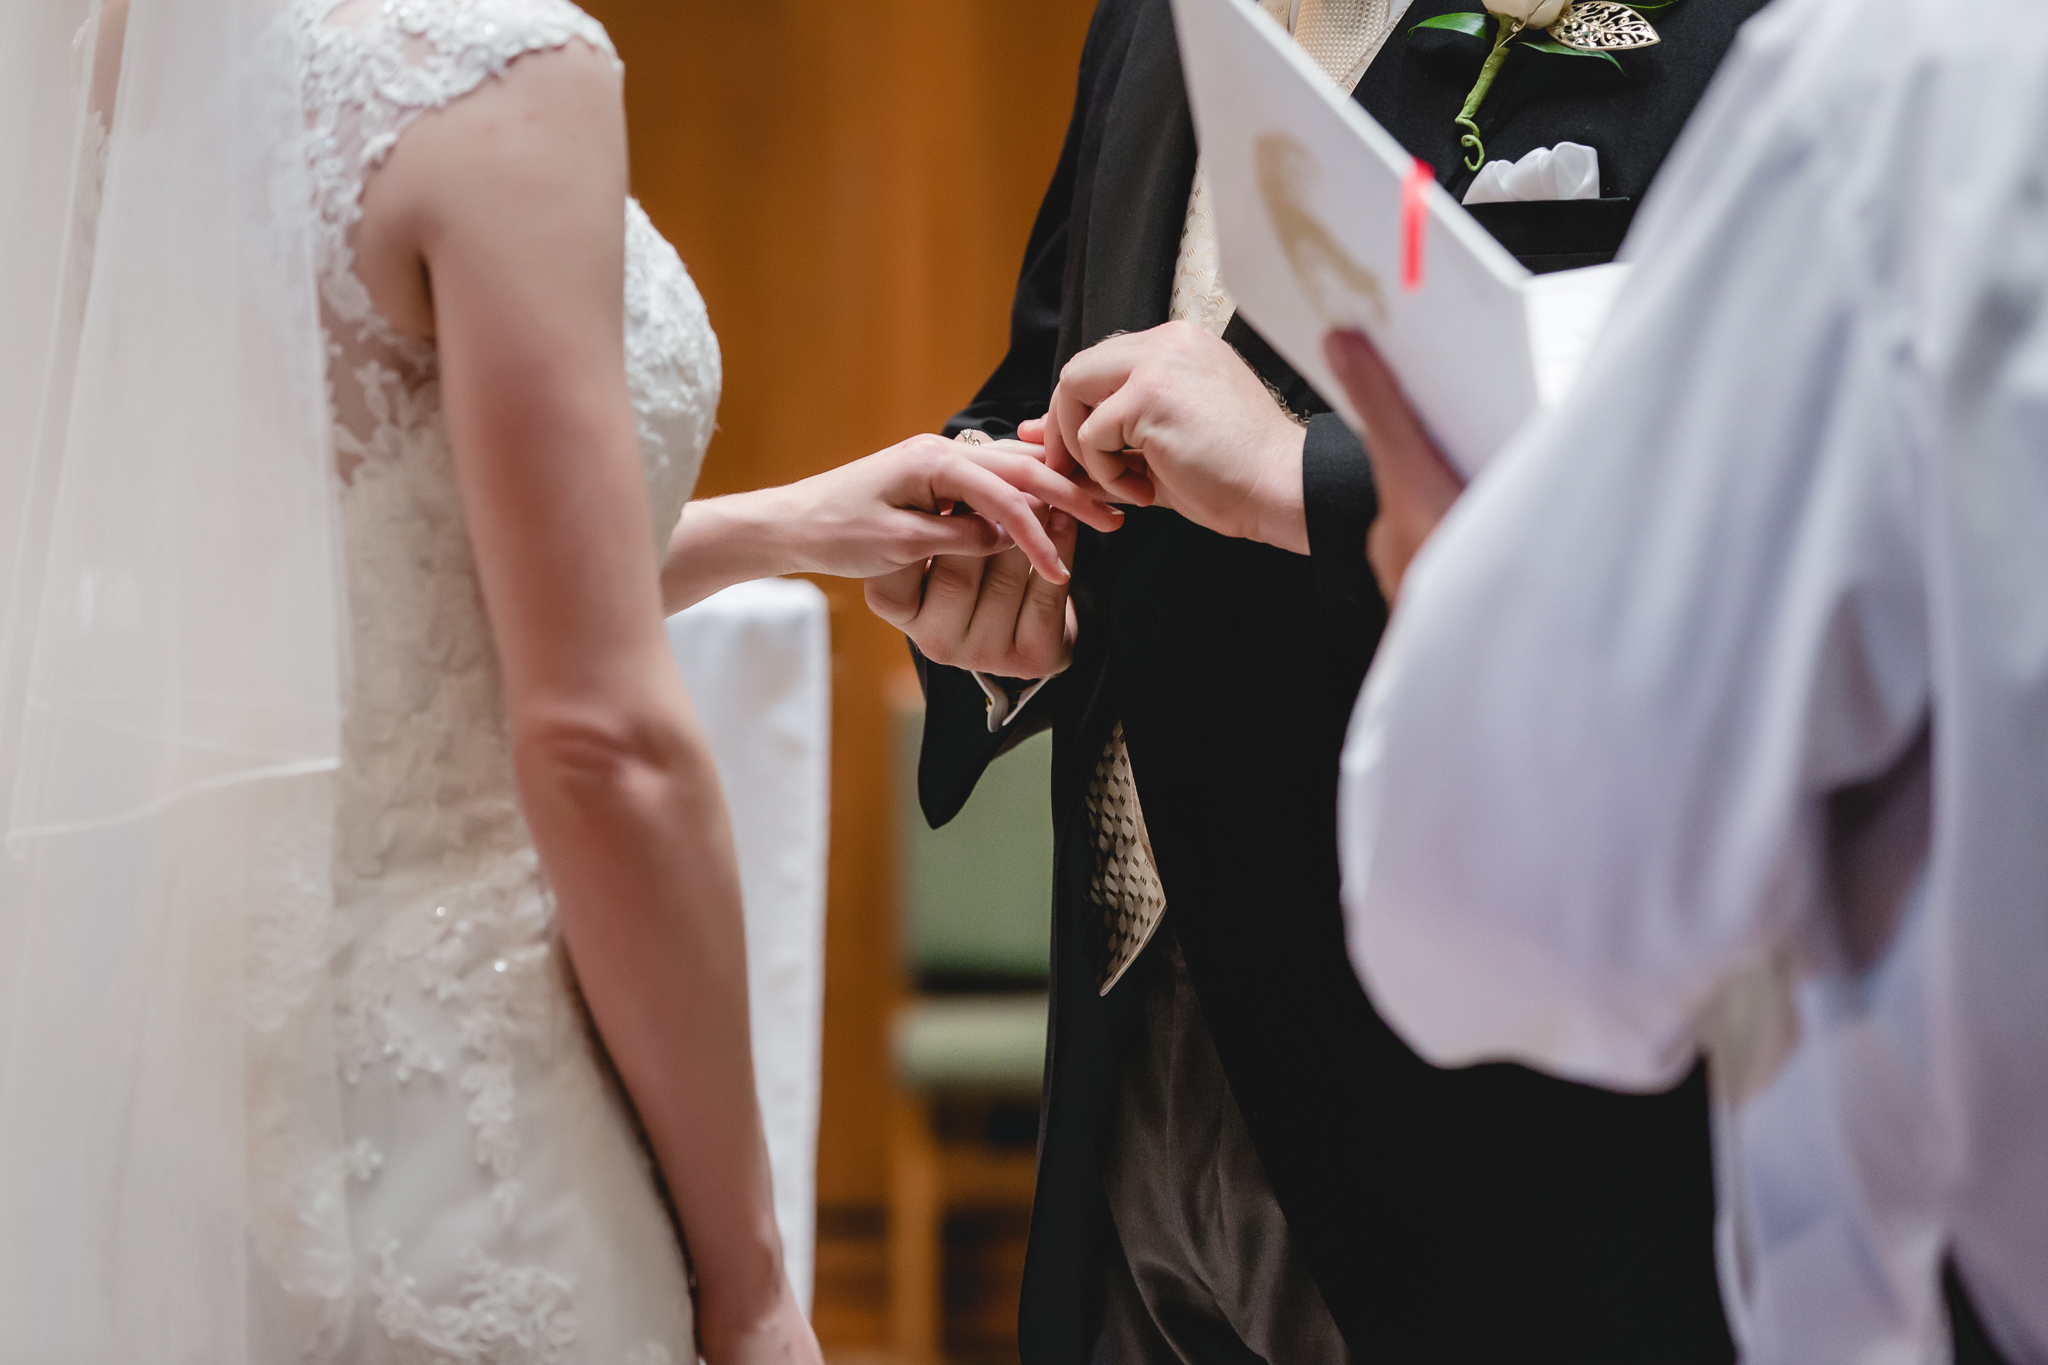 Groom puts ring on bride's finger at St. John Neumann Church in Pittsburgh PA